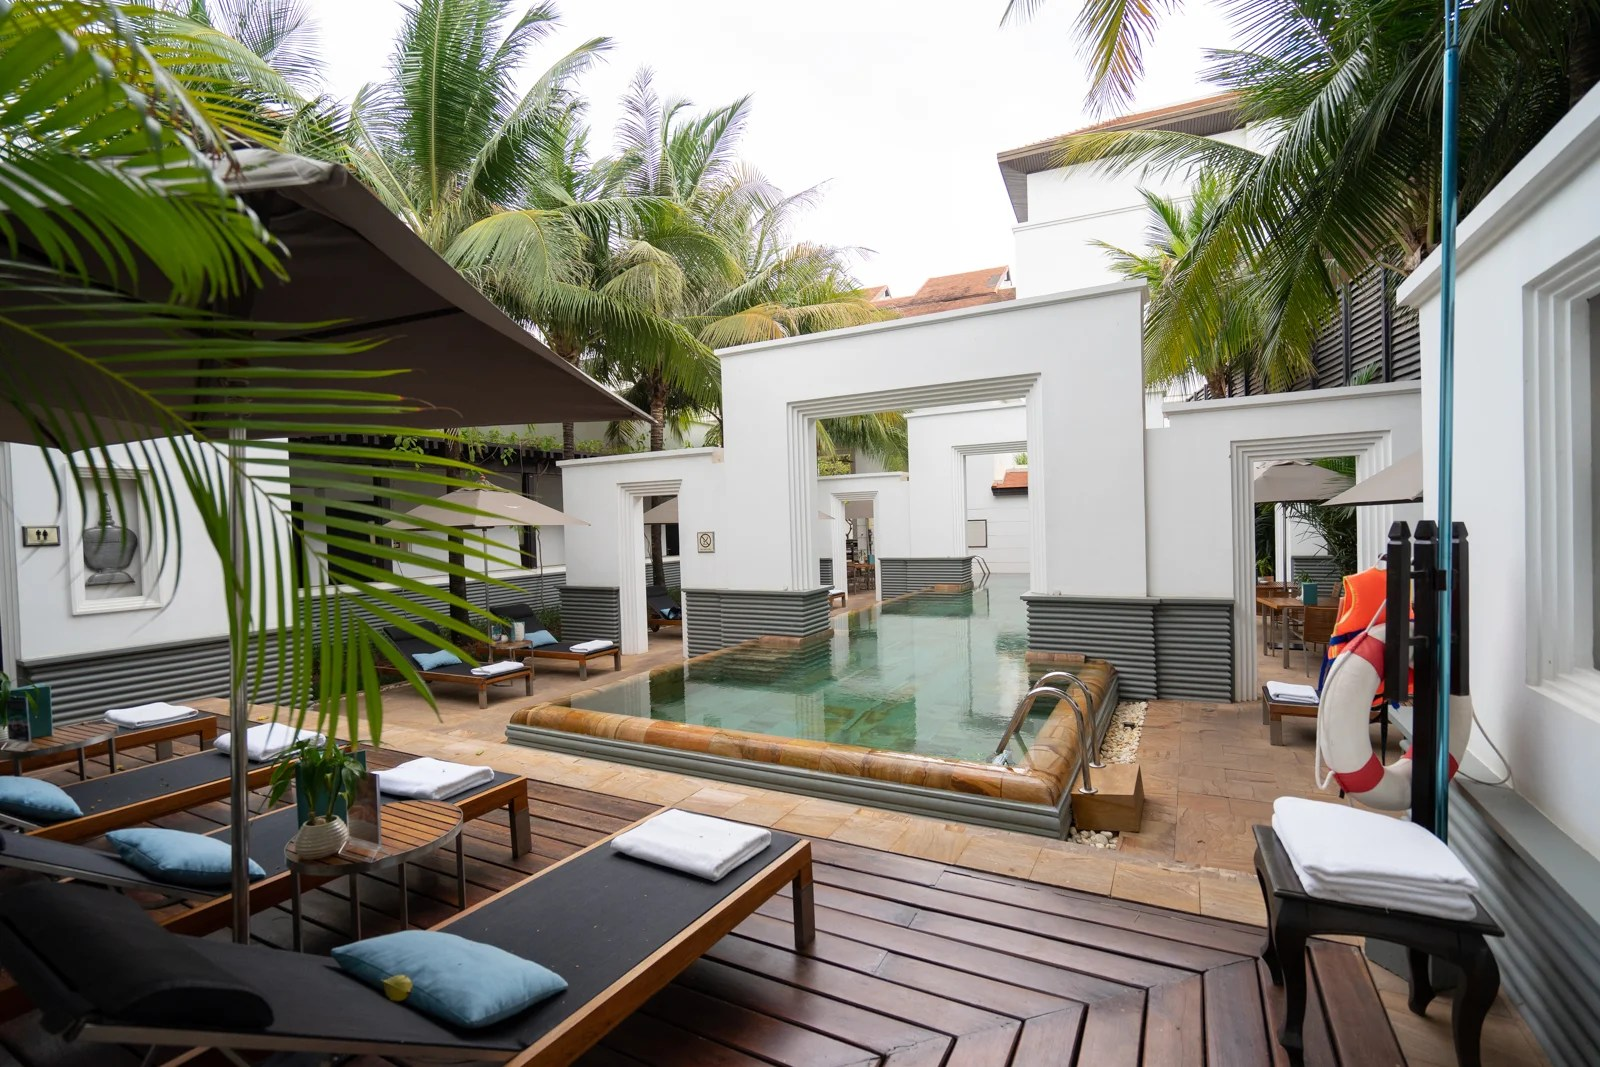 Local Luxury: A Review of Park Hyatt Siem Reap in Cambodia